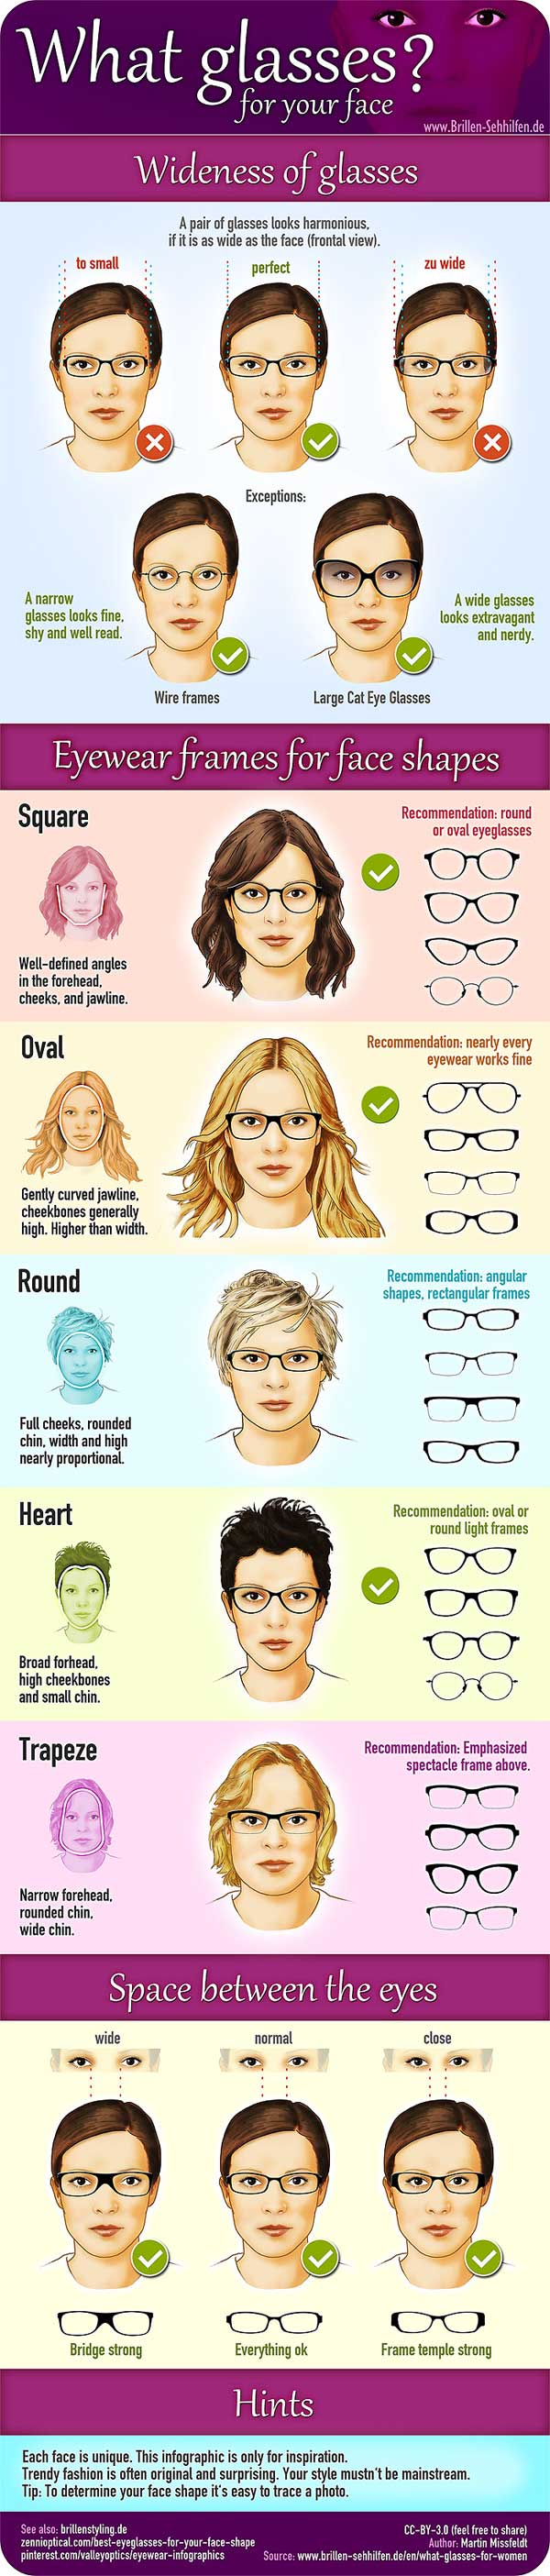 cd4c4bf7044e Glasses frames for woman - Face shape Guide